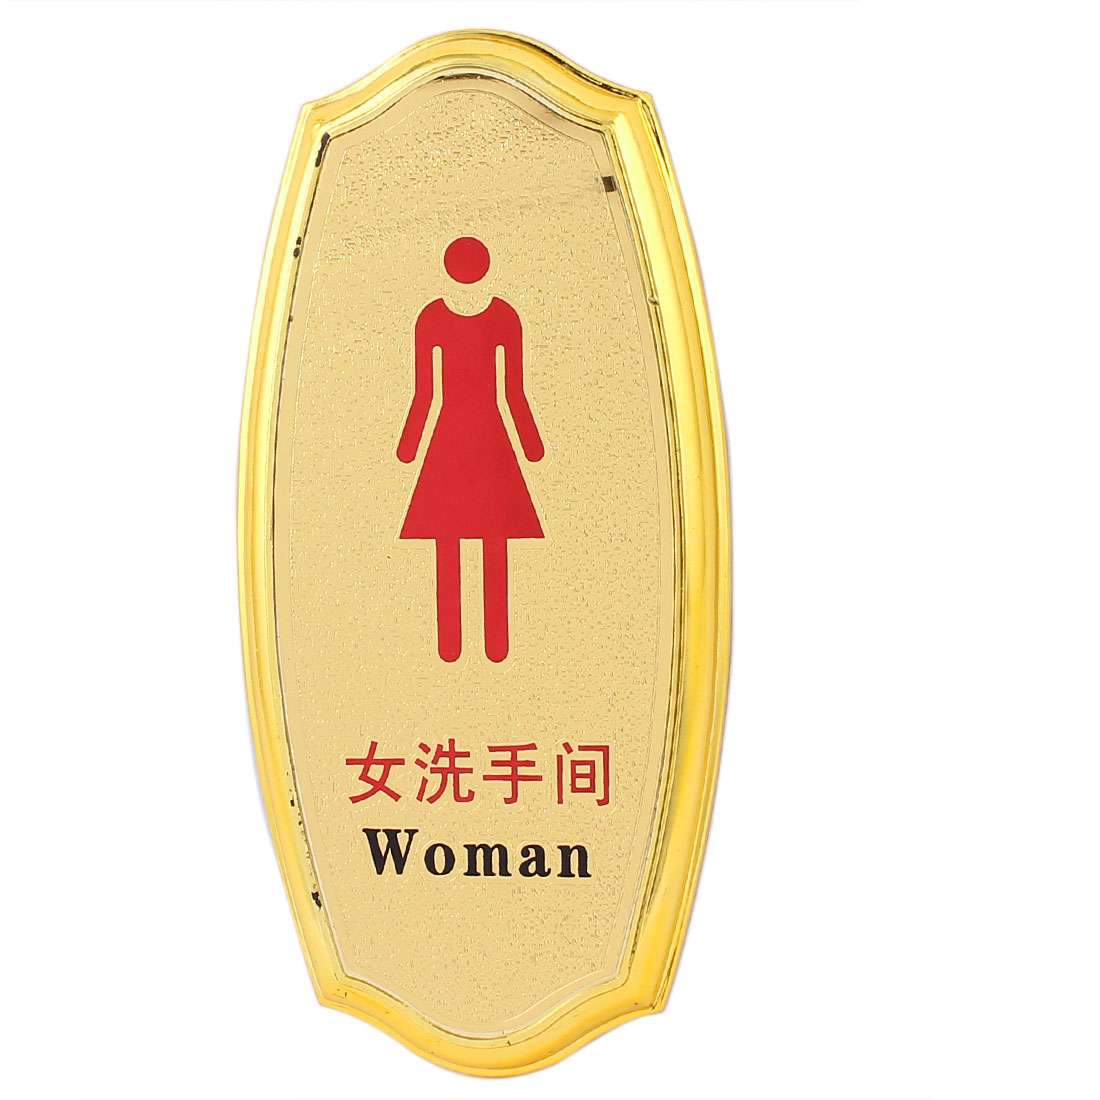 Public Restroom Toilet Washroom Oval Shaped Ladies Signs Caution Board Gold Tone